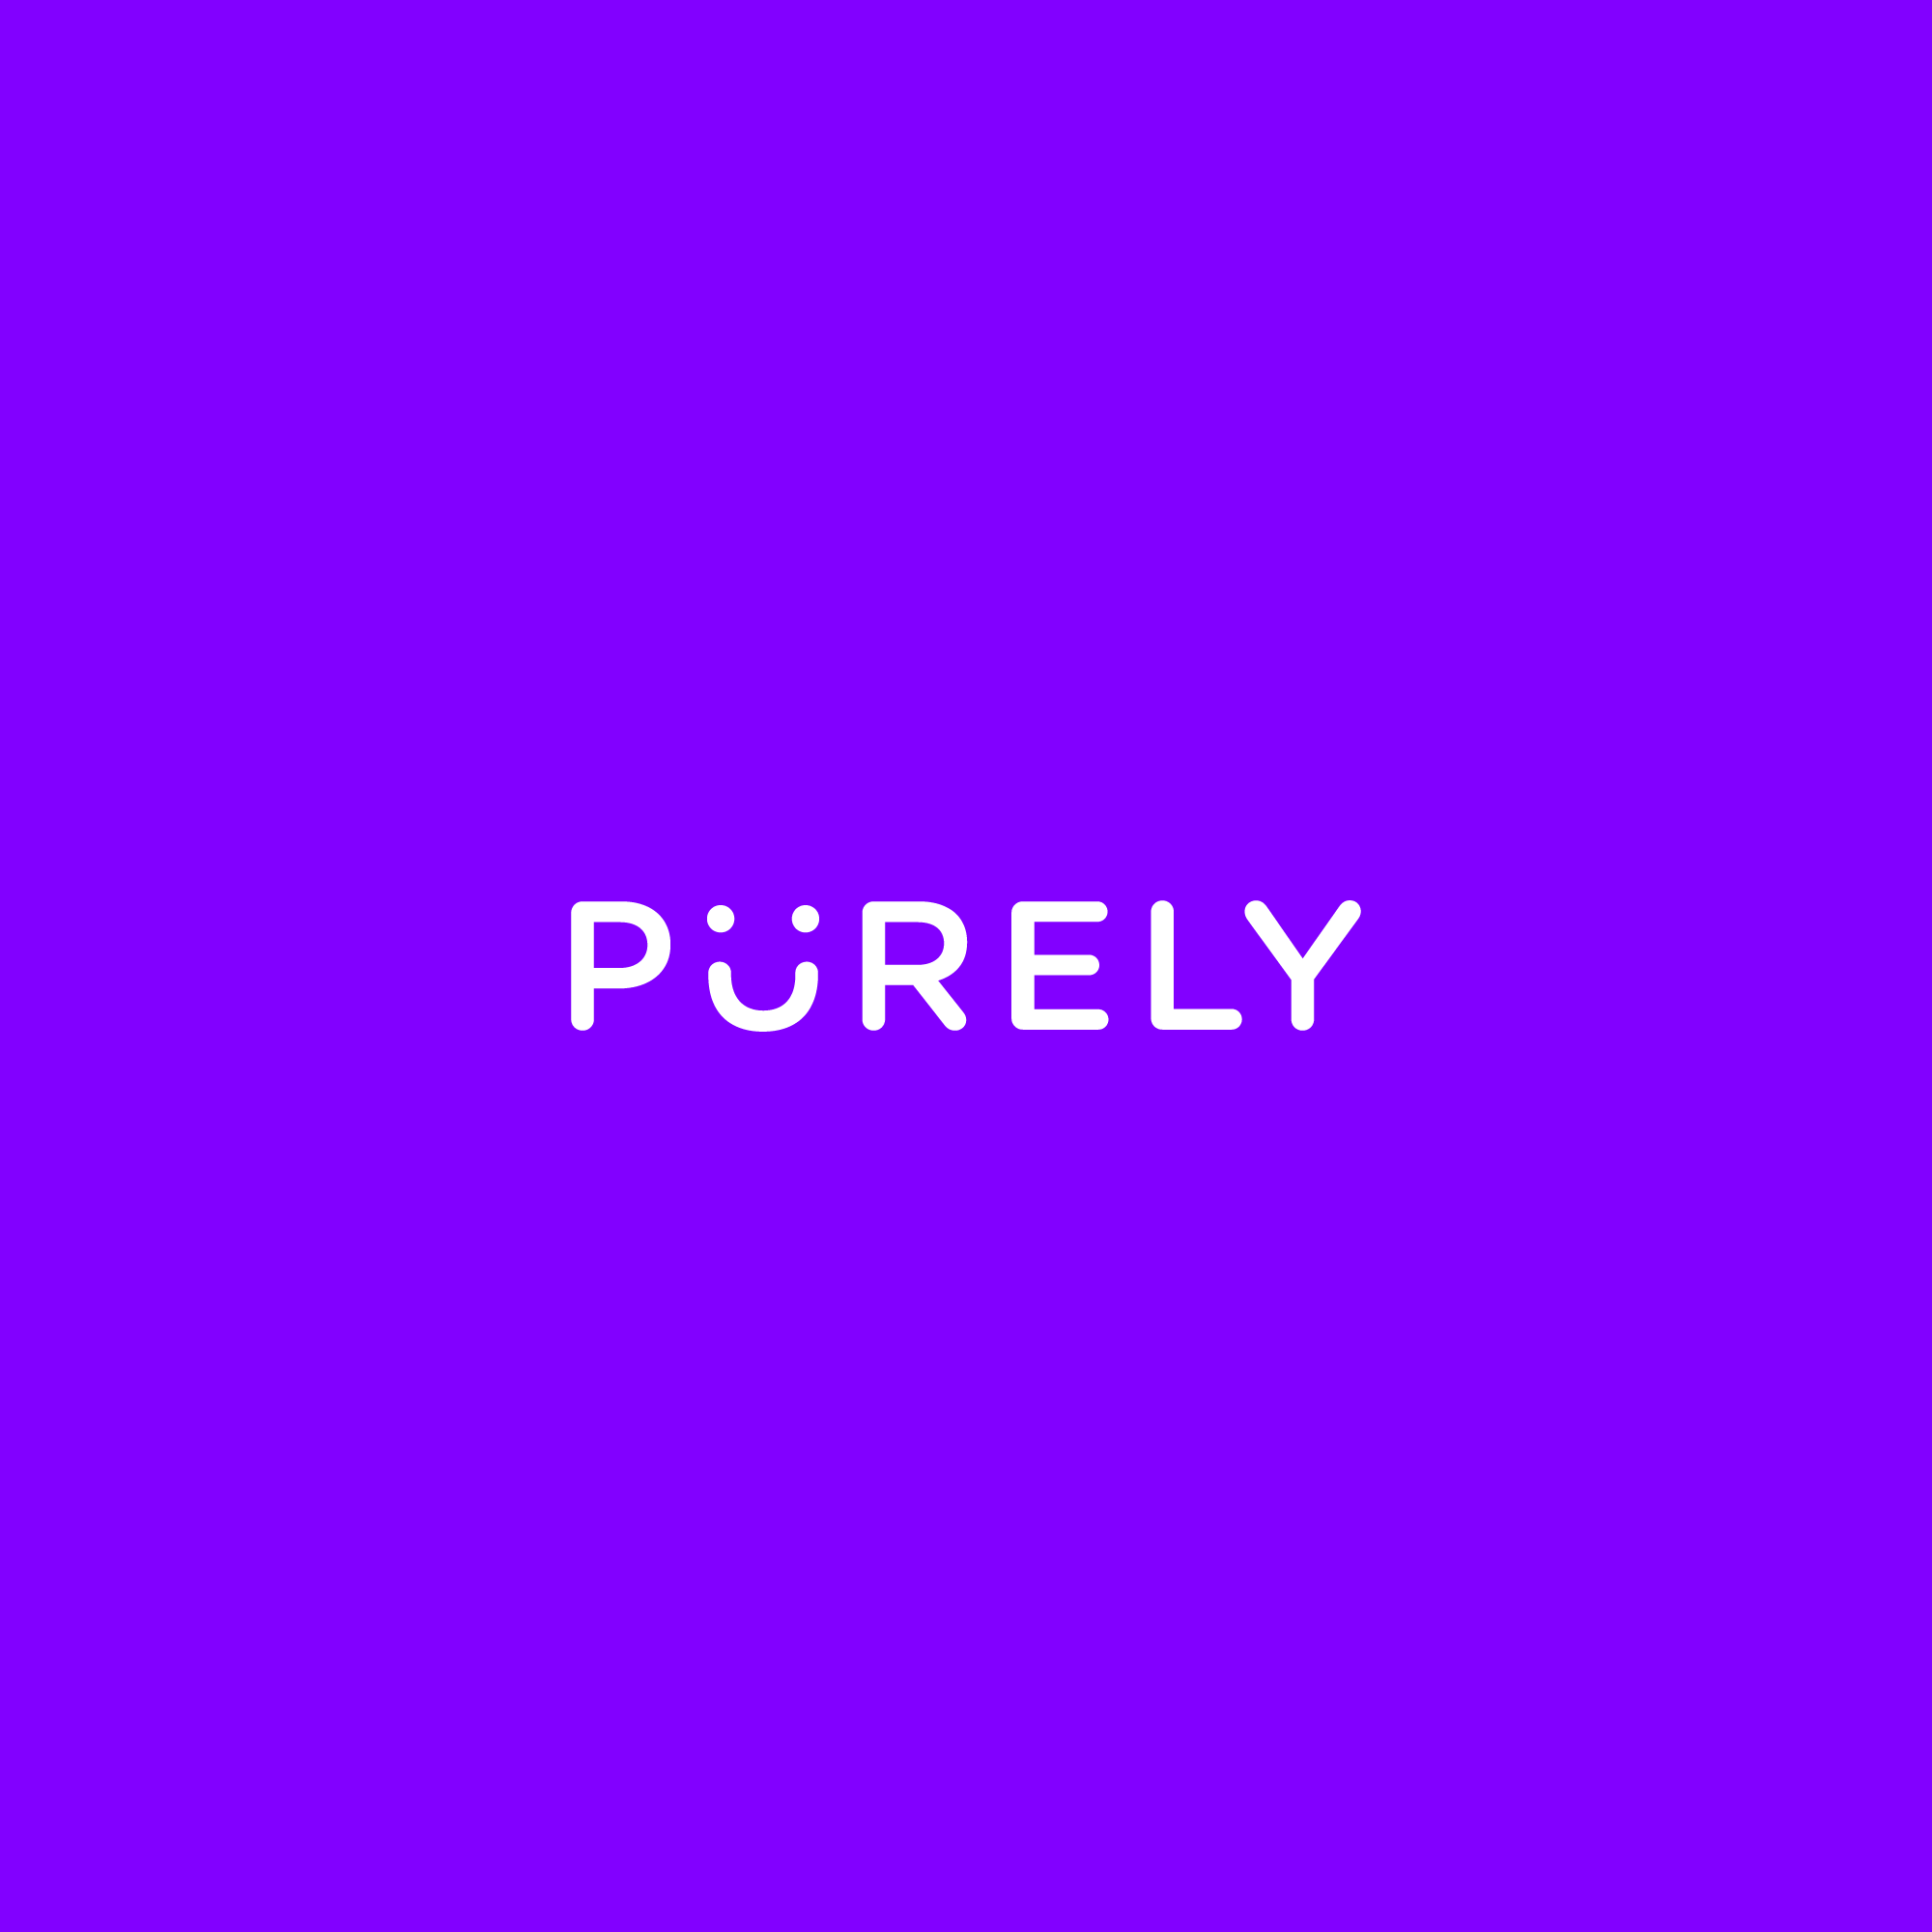 Purely-logo.png